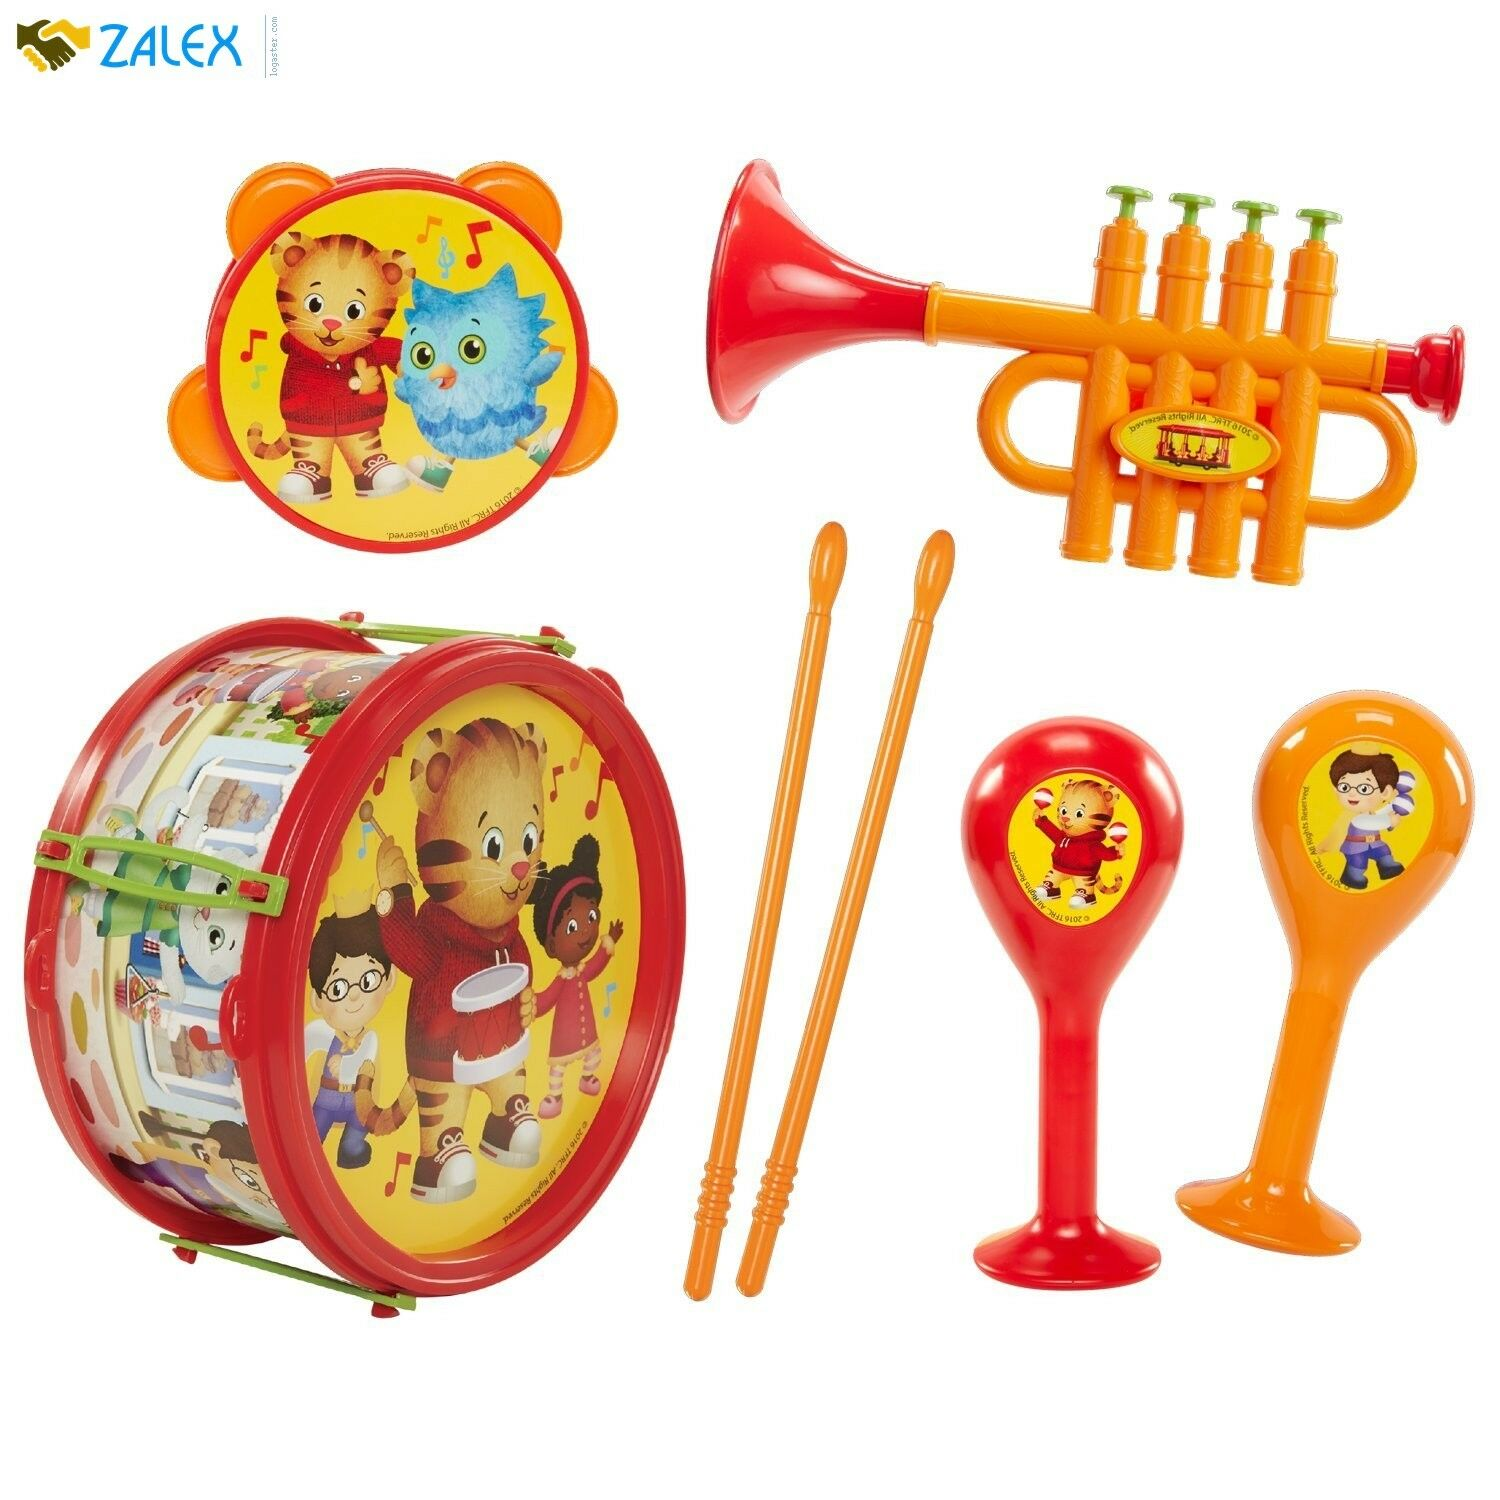 7 Piece Musical Instrument Play-set Daniel Tiger's Tiger's Tiger's Neighborhood Educational Toys 9d748d